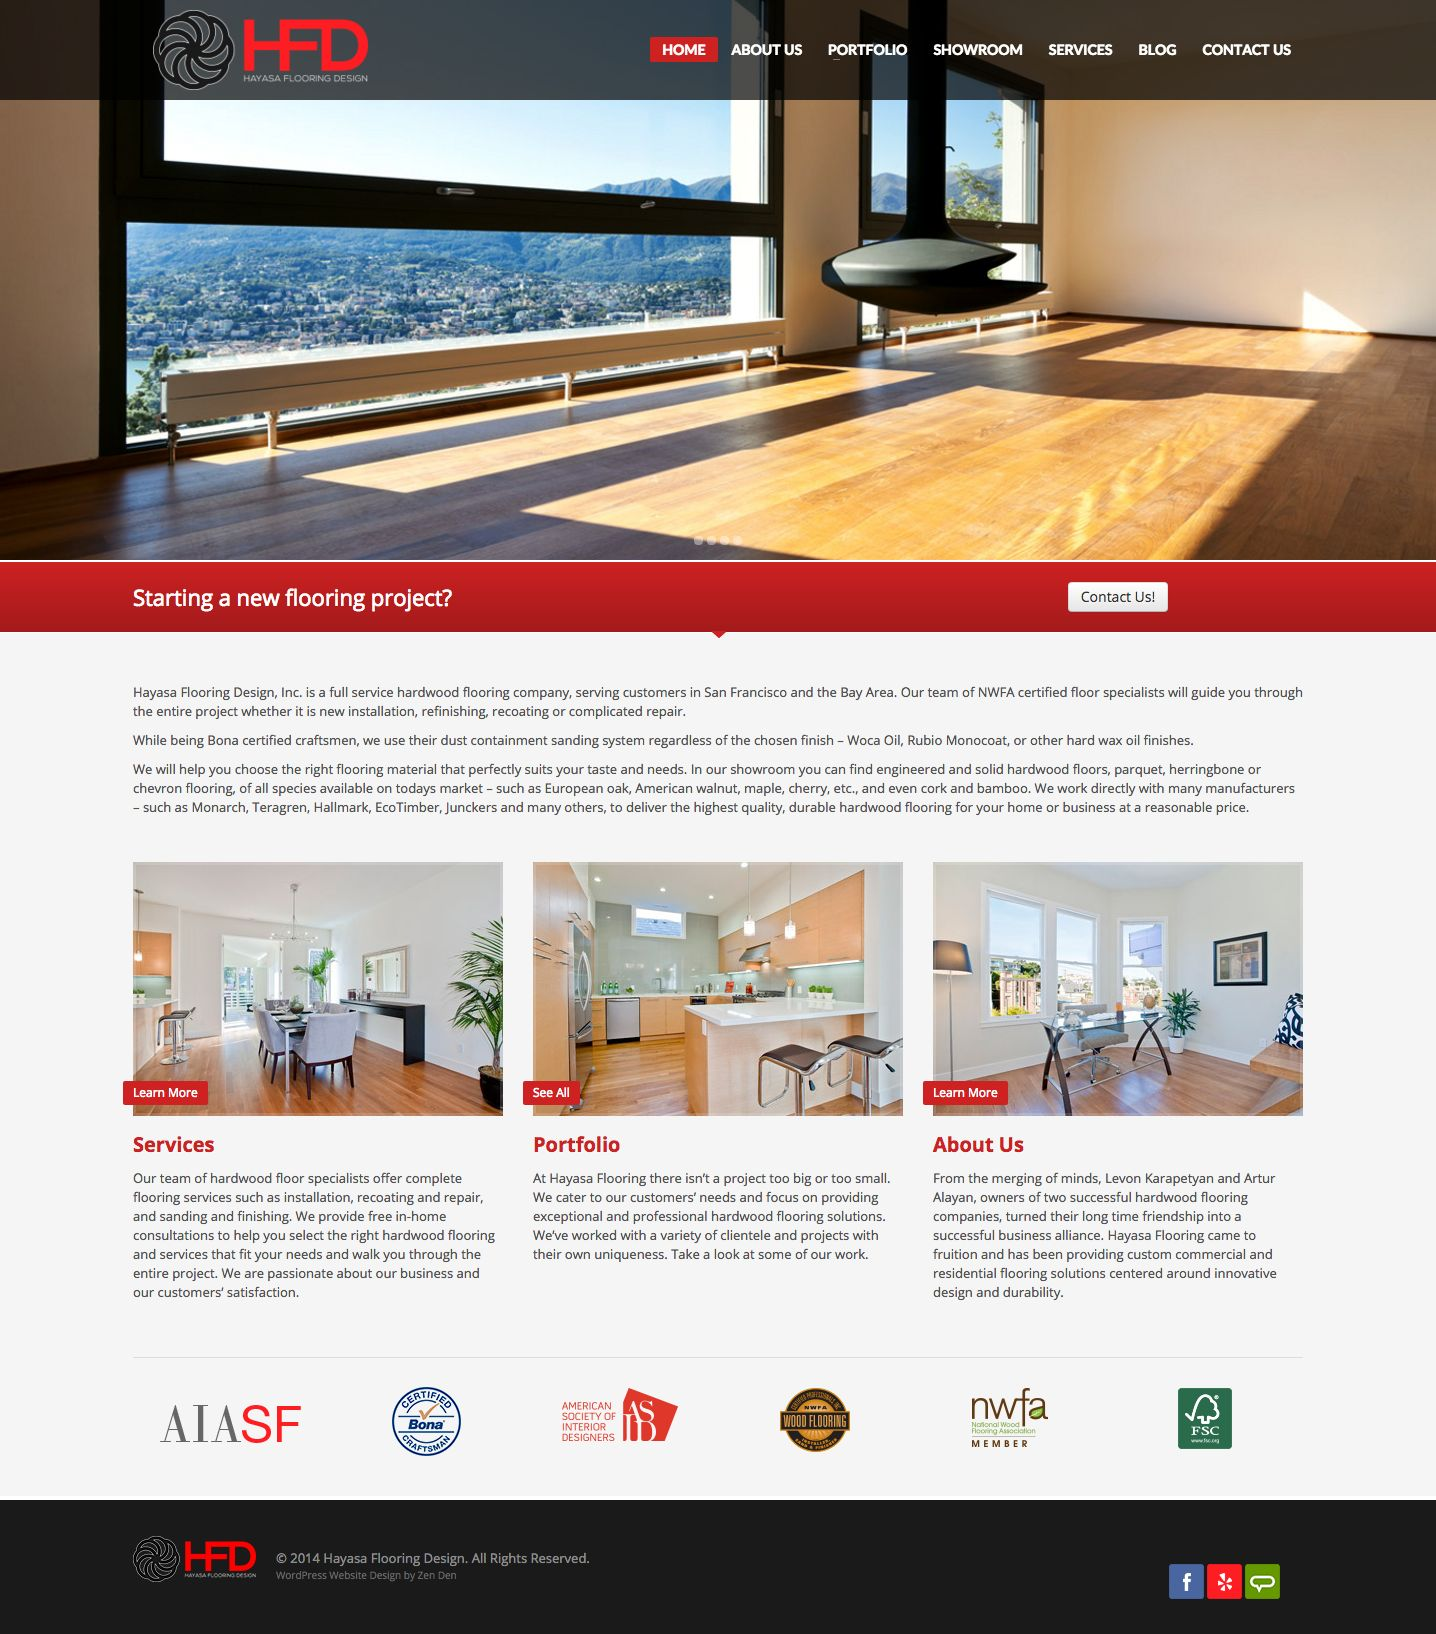 WordPress-Website-Design-Company-San-Francisco-Hayasa-Flooring-1